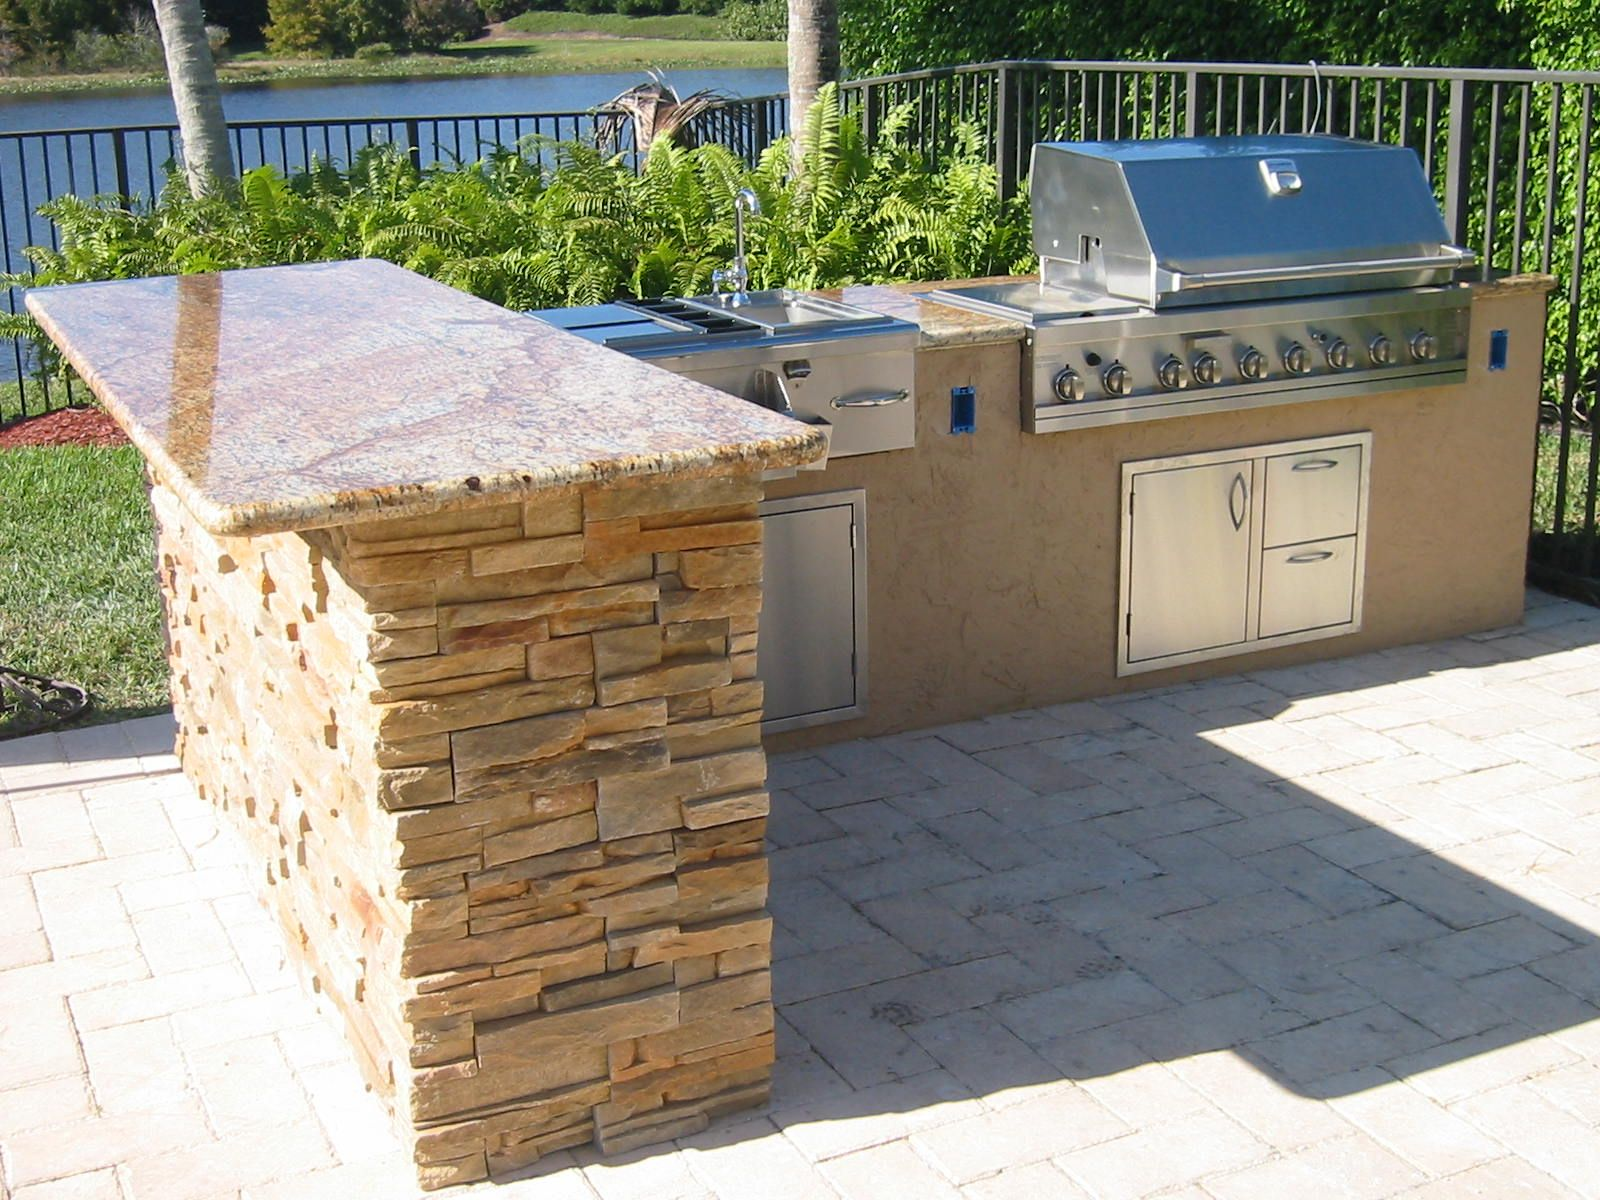 Granite Stone For Kitchen Outdoor Grill Islands Custom Outdoor Kitchen In Florida With